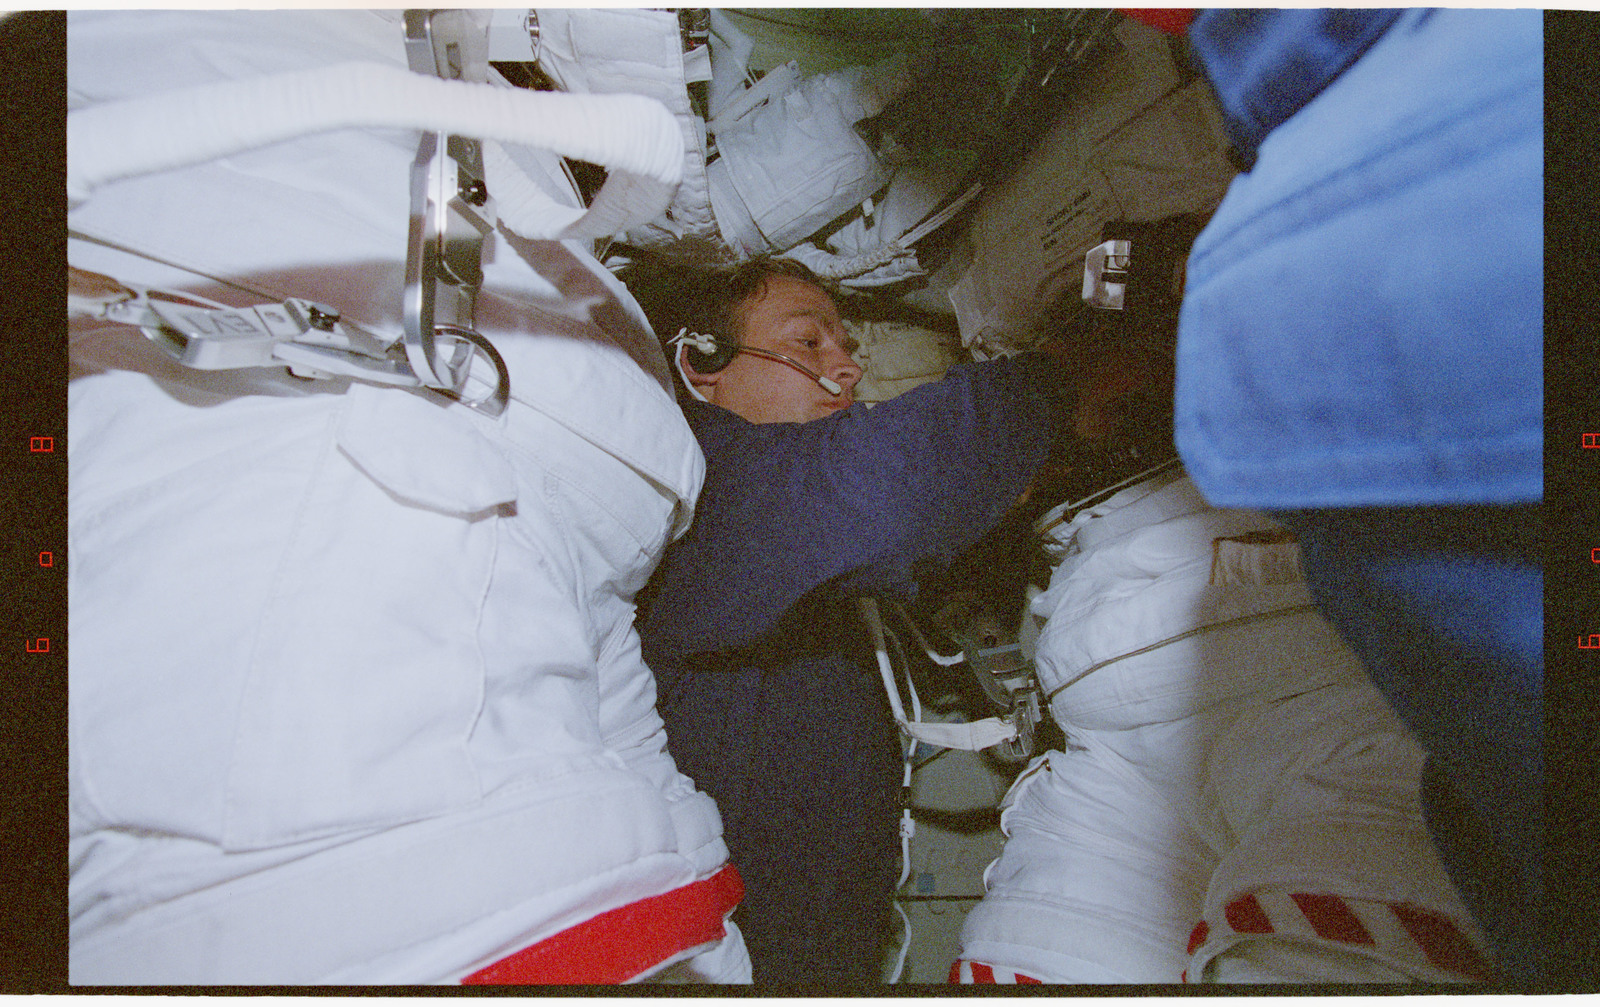 STS082-356-034 - STS-082 - Suiting up activities in the external airlock